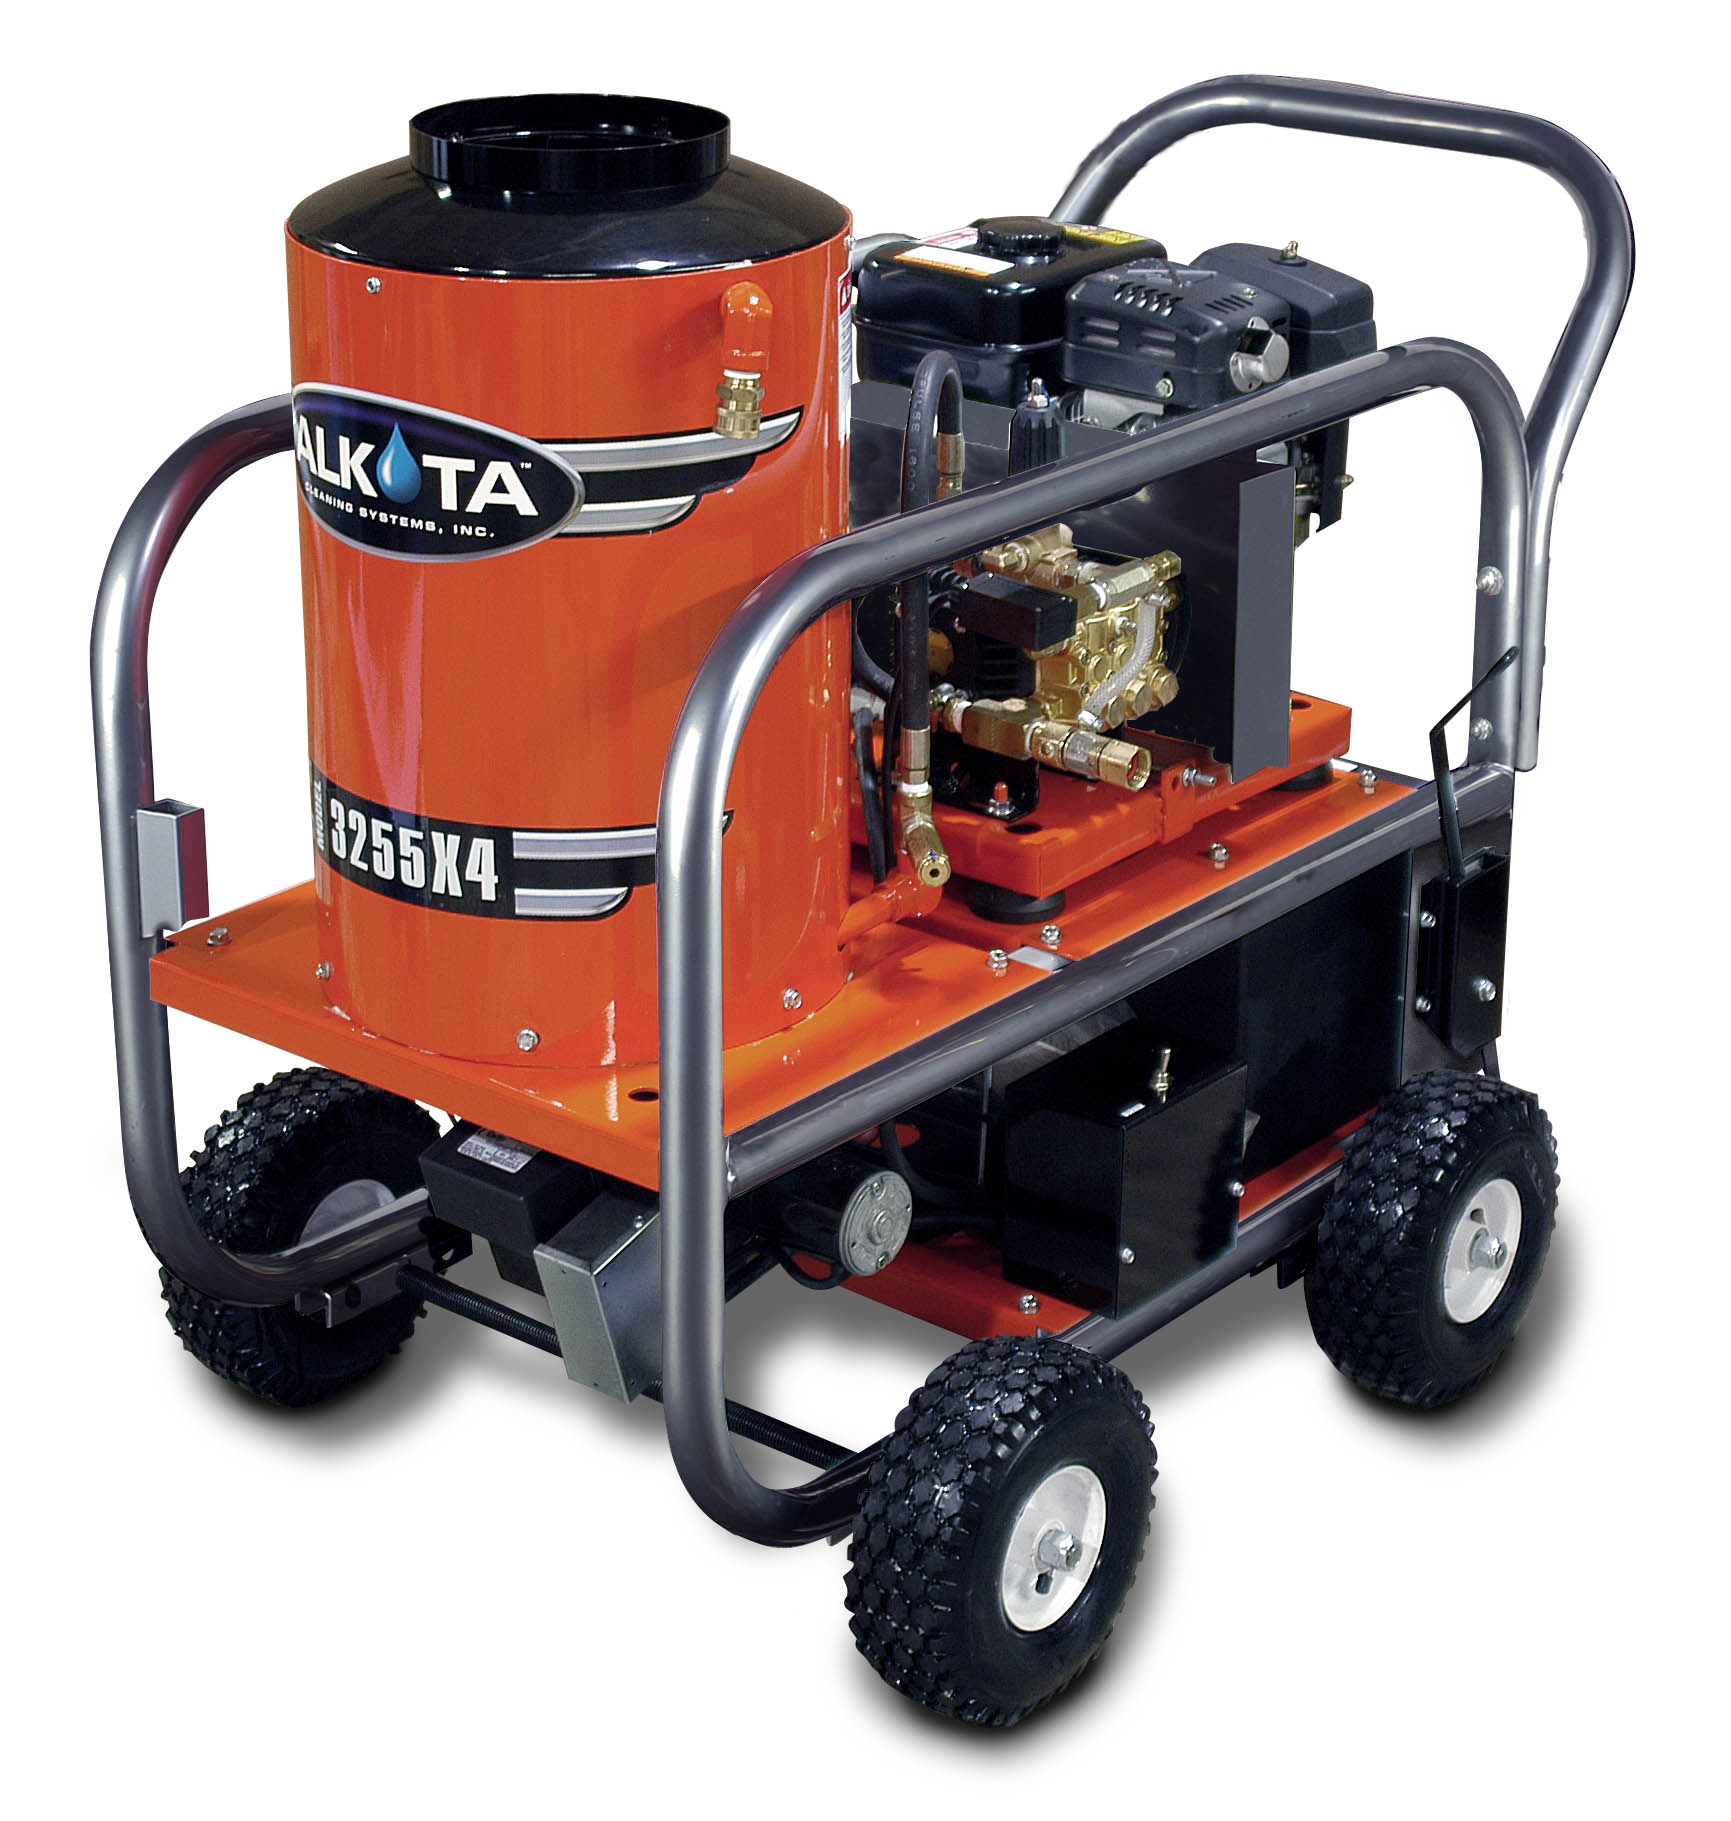 pressure washers hot water gas engine 3255x4 alkota alkota rh alkota com Alkota Steam Cleaner Parts Manual Alkota Steam Cleaner Dealers